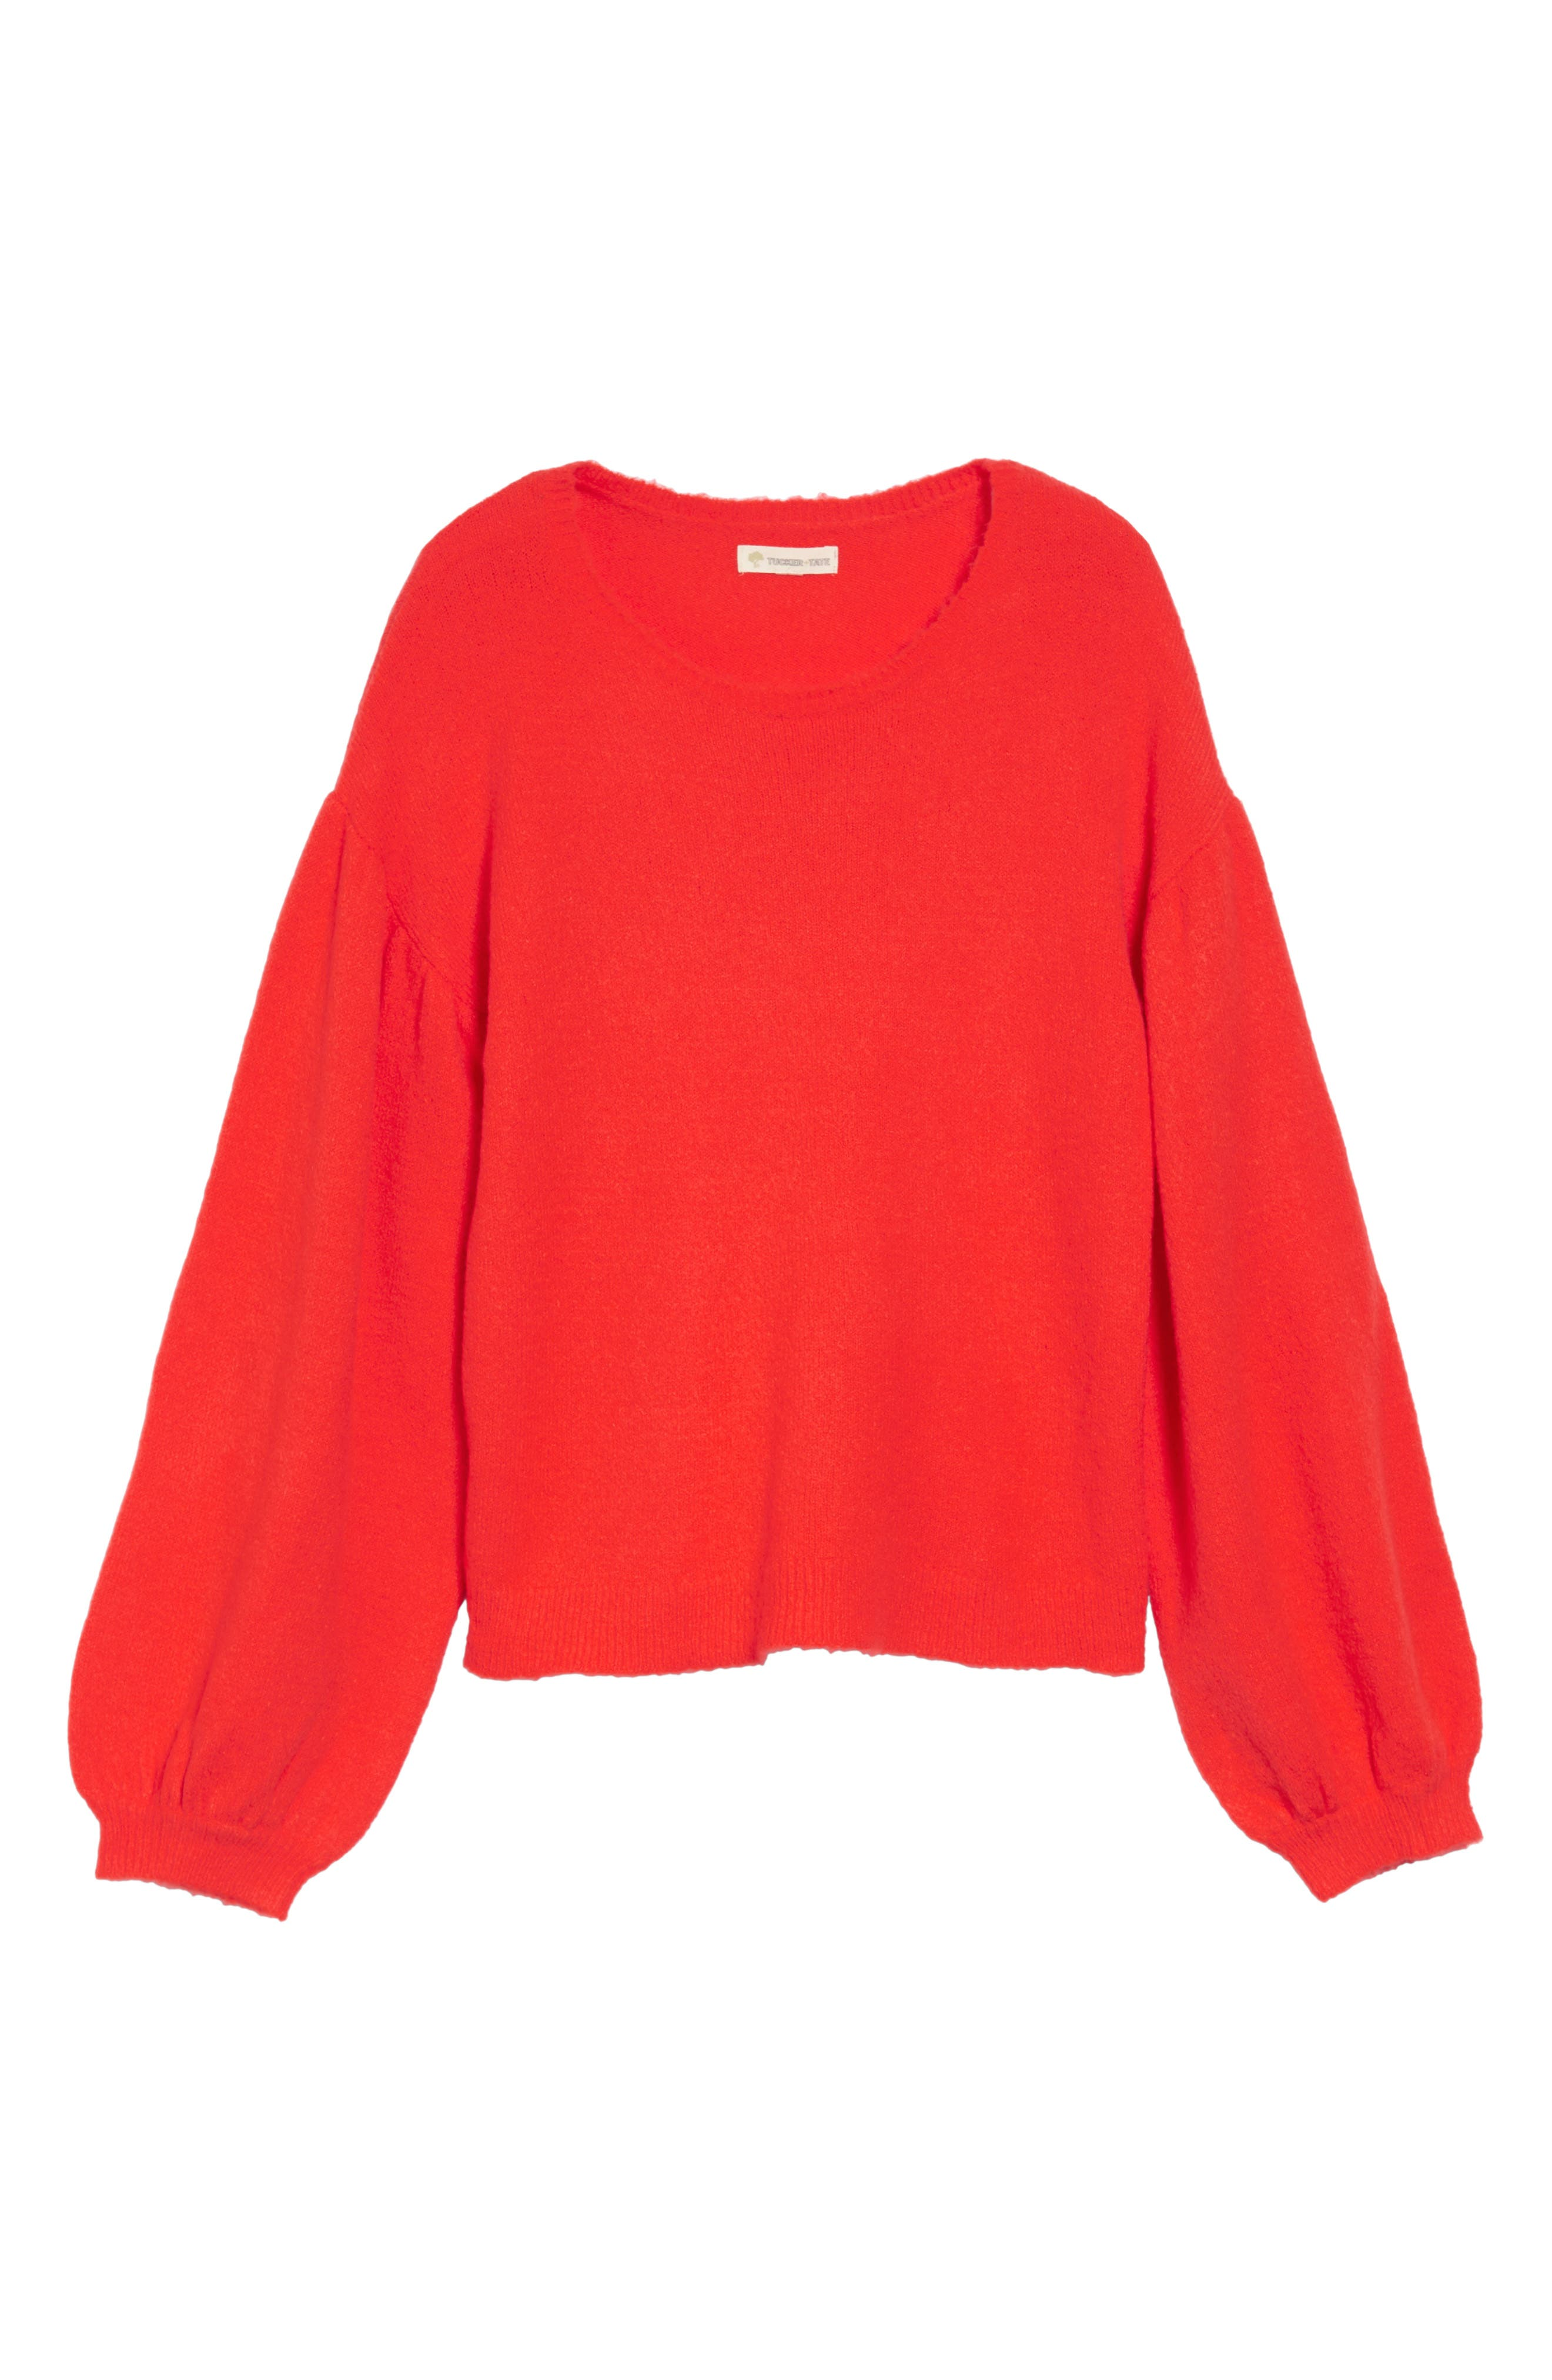 Bubble Sleeve Sweater,                         Main,                         color, RED TOMATO